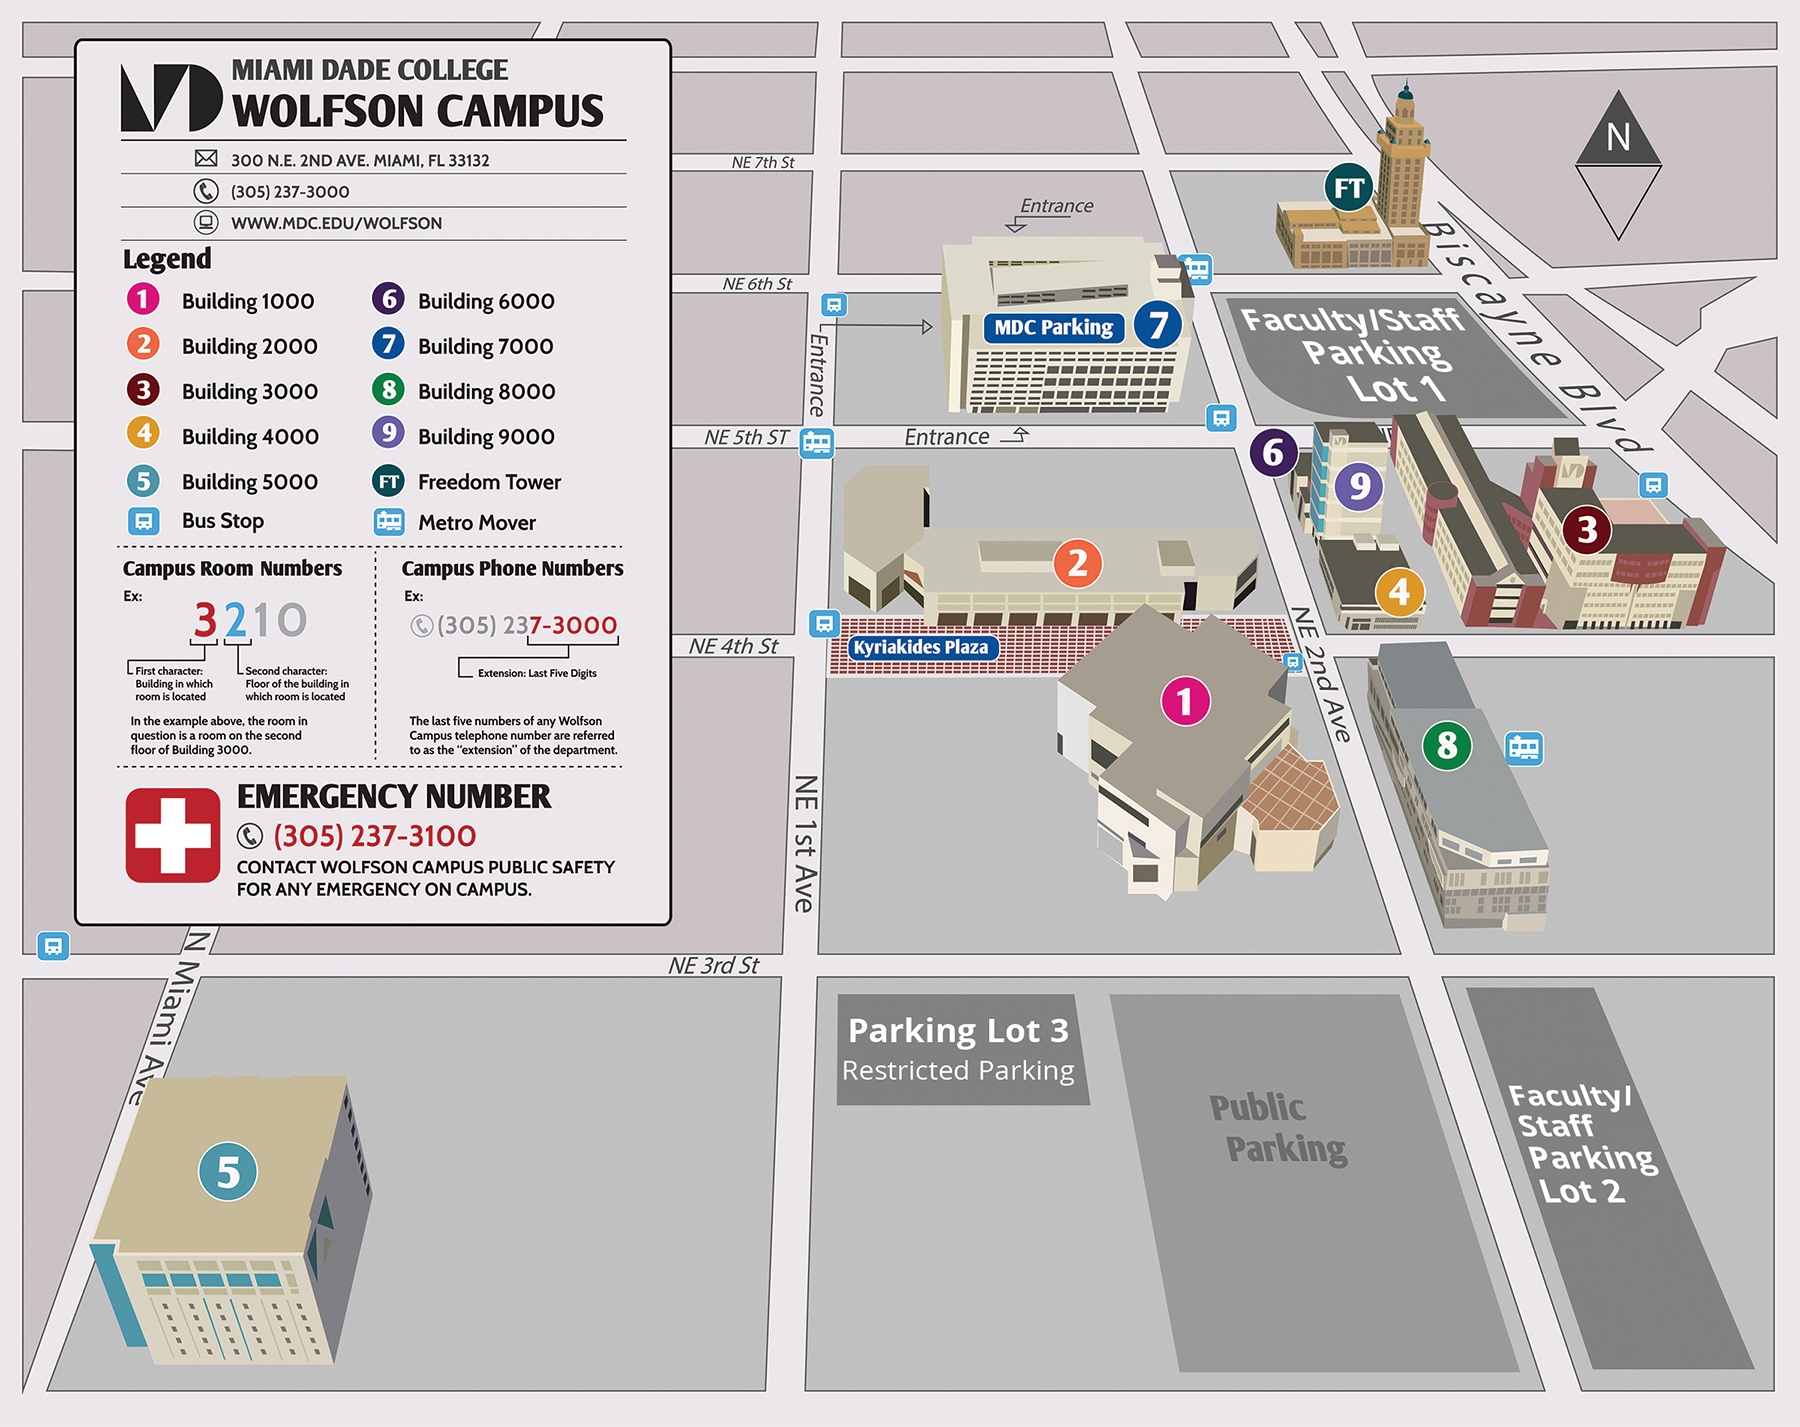 Wolfson Campus Map & Directions